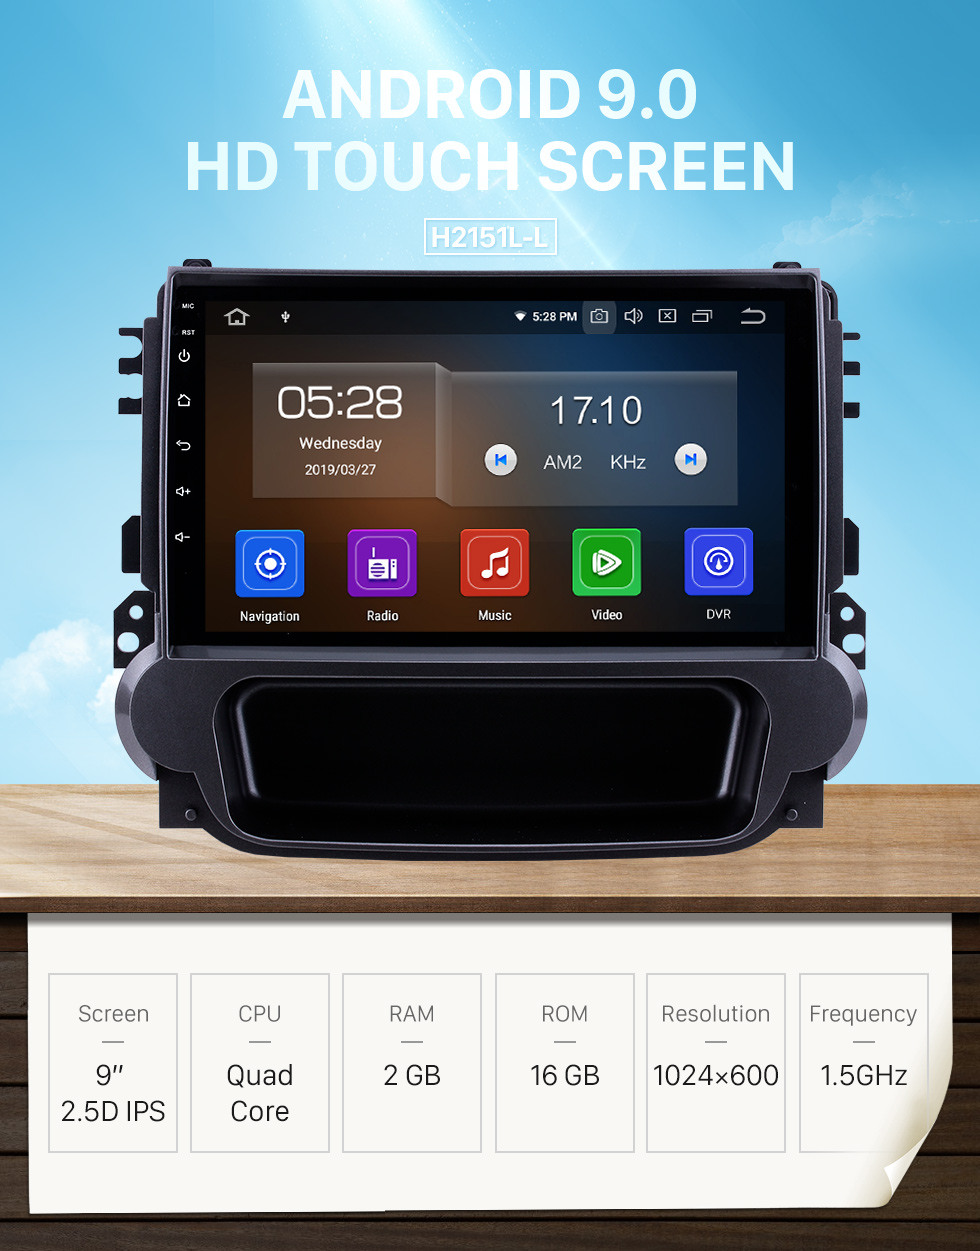 Seicane 9 inch Android 9.0 2012 2013 2014 Chevy Chevrolet Malibu Radio GPS HD 1024*600 Touchscreen Bluetooth OBD2 Backup camera digital TV 4G WIFI Steering Wheel Control Mirror Link